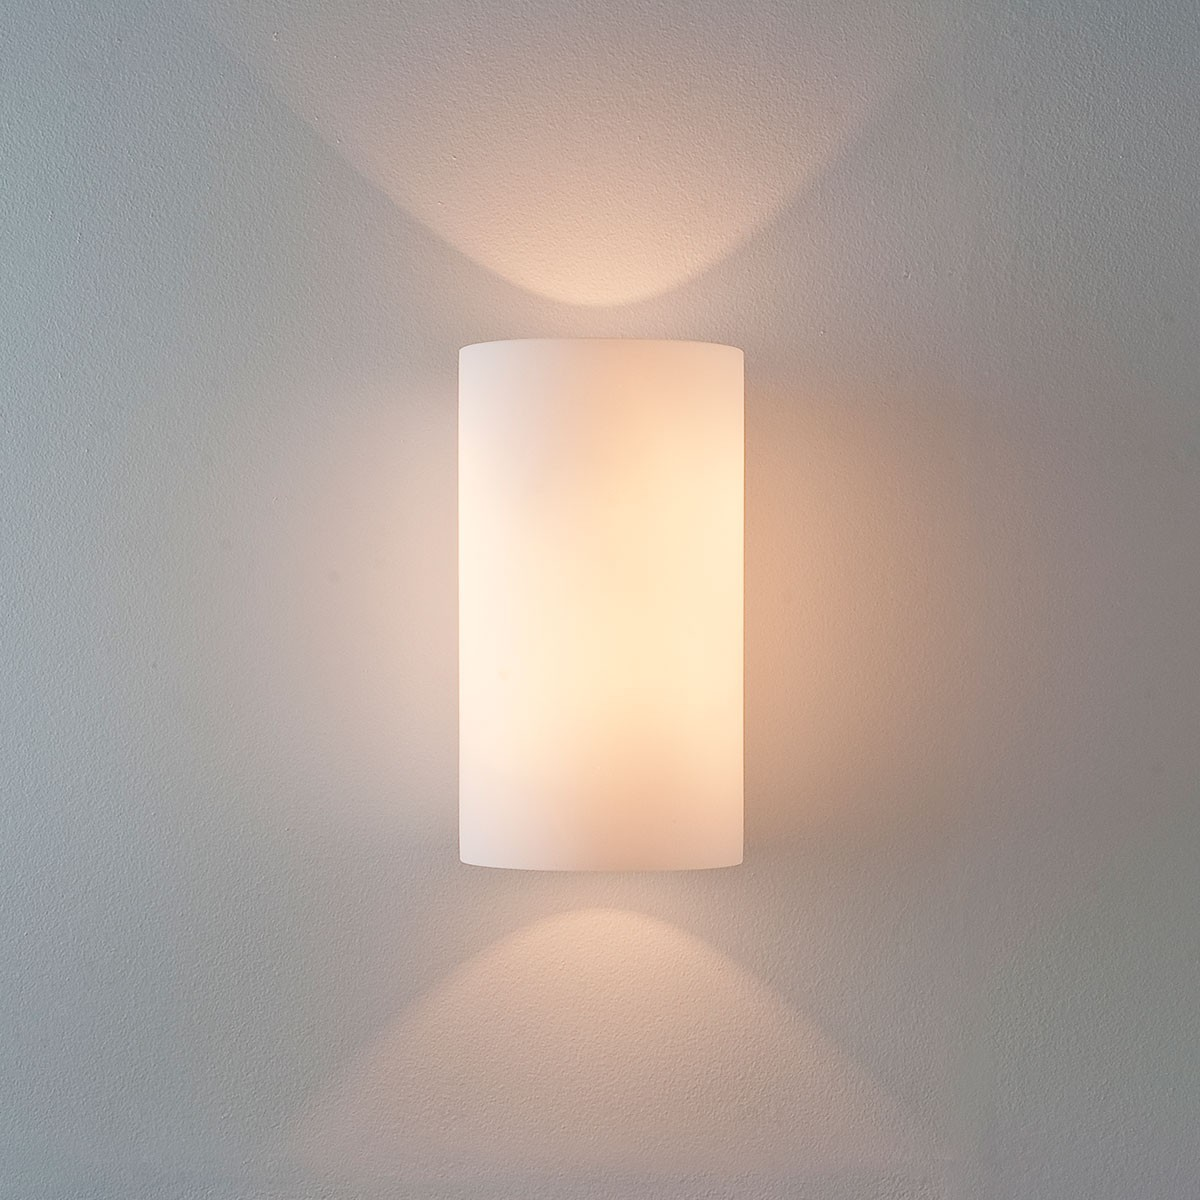 Luxury Glass Wall Lights : Astro Cyl 260 White Glass Wall Light at UK Electrical Supplies.